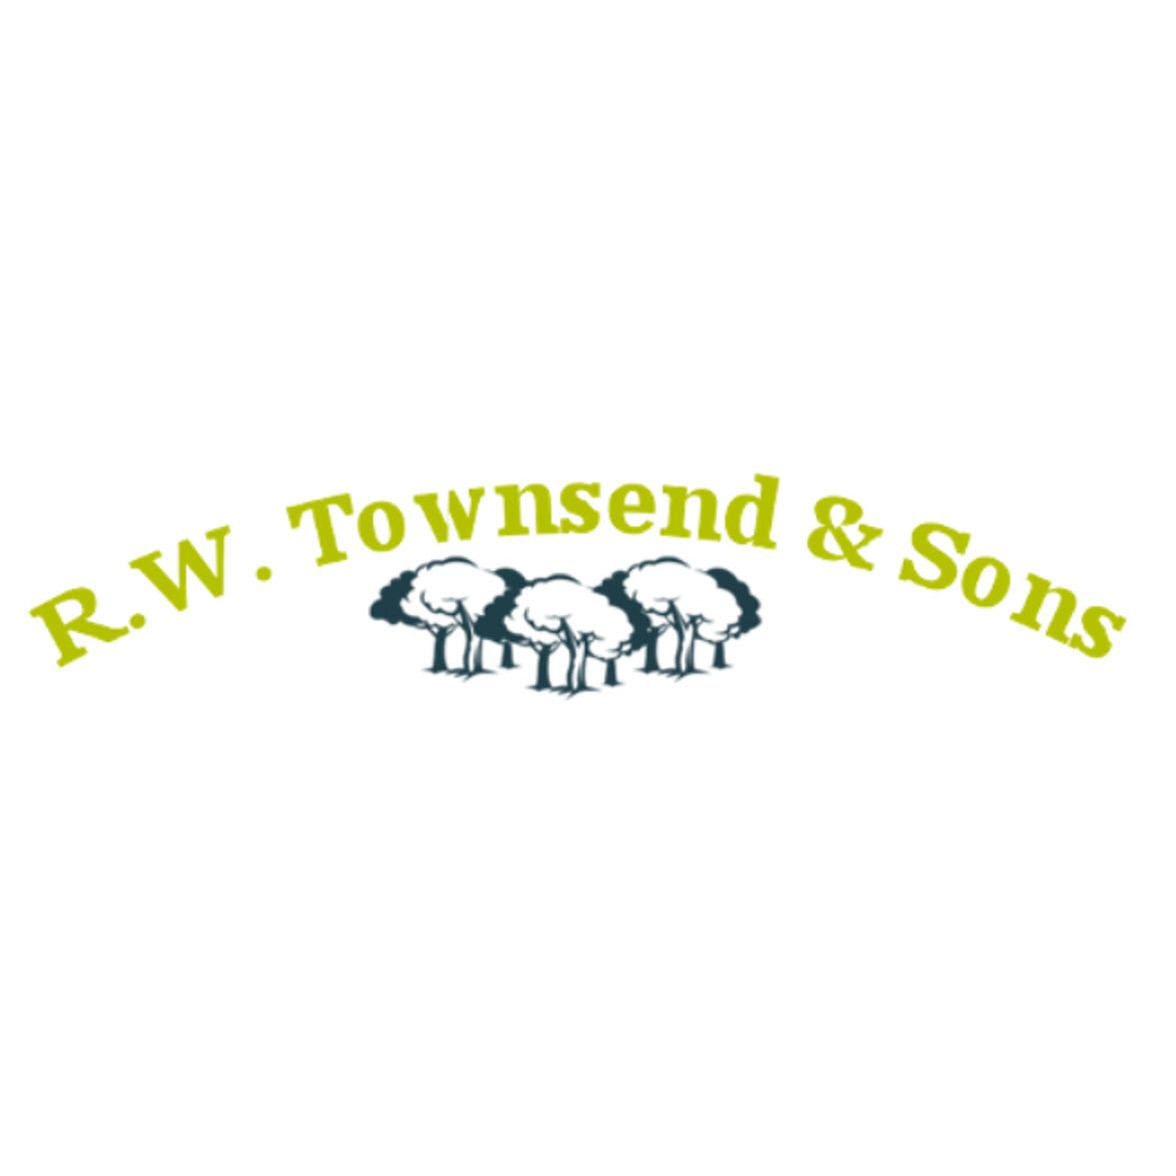 Townsend RW & Sons